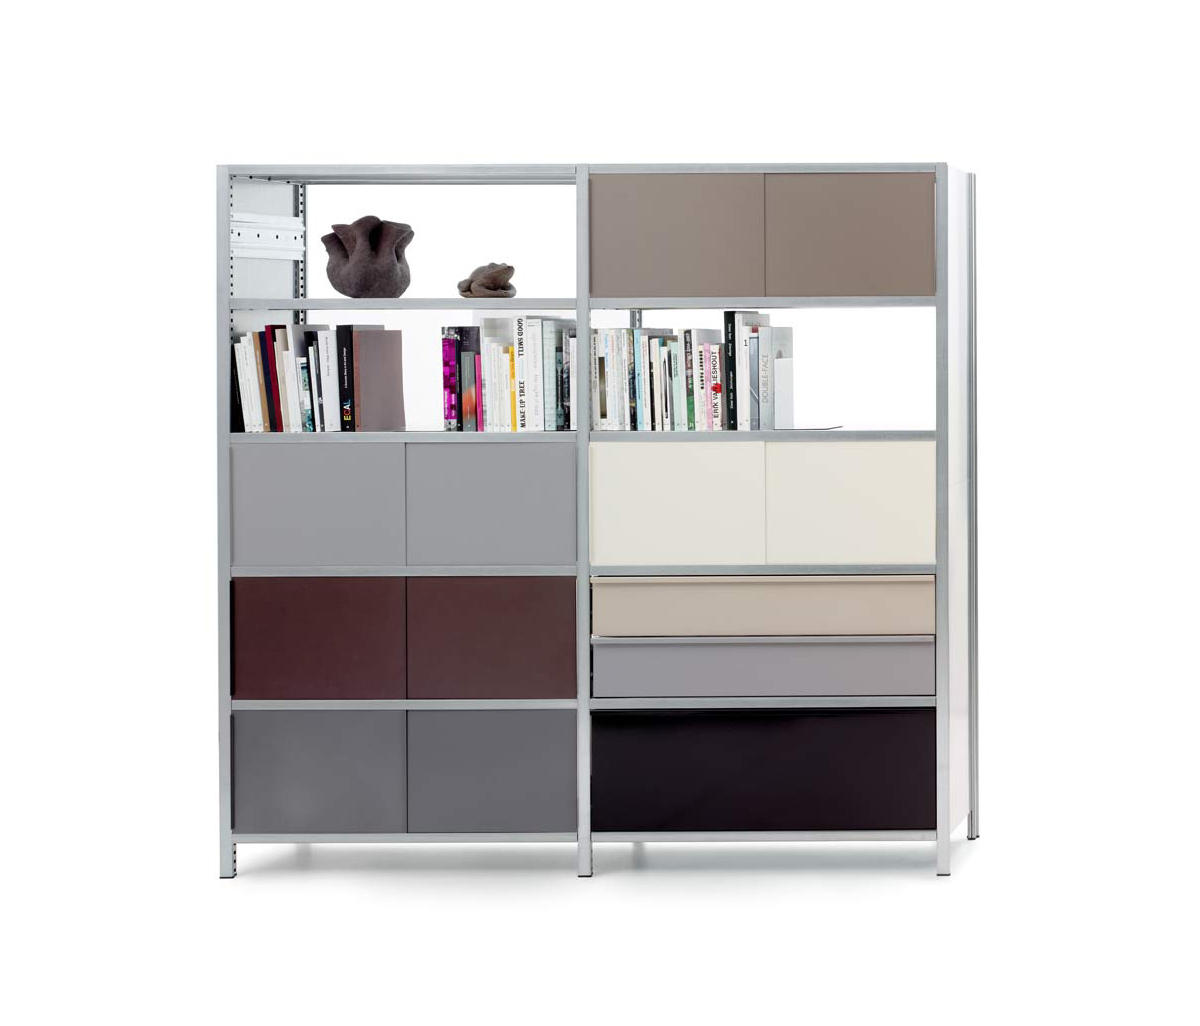 mf system regal mit schiebet ren b roregalsysteme von. Black Bedroom Furniture Sets. Home Design Ideas